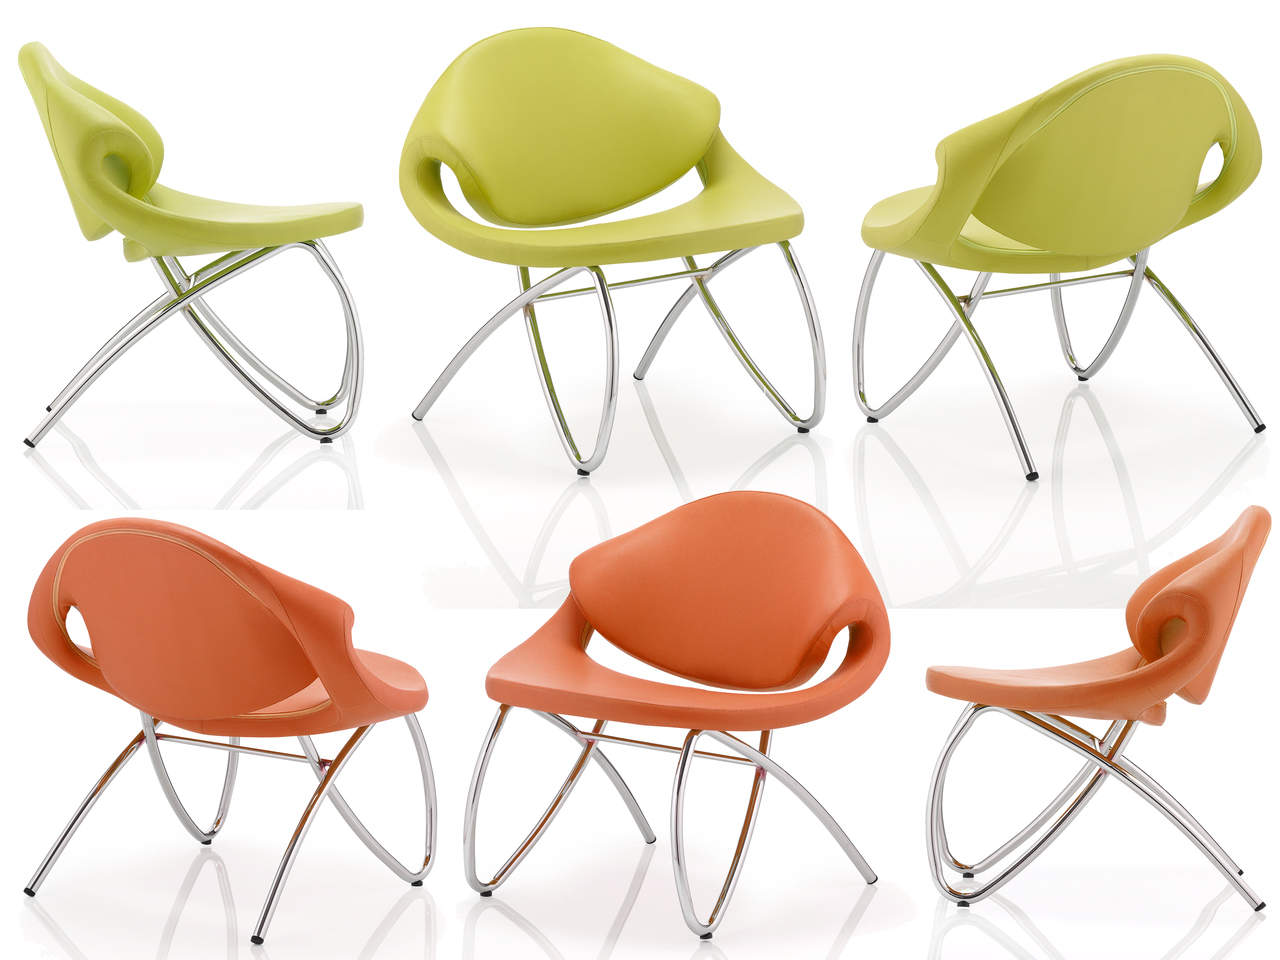 Beau Visitor Reception Soft Seating Chair in Green or Orange